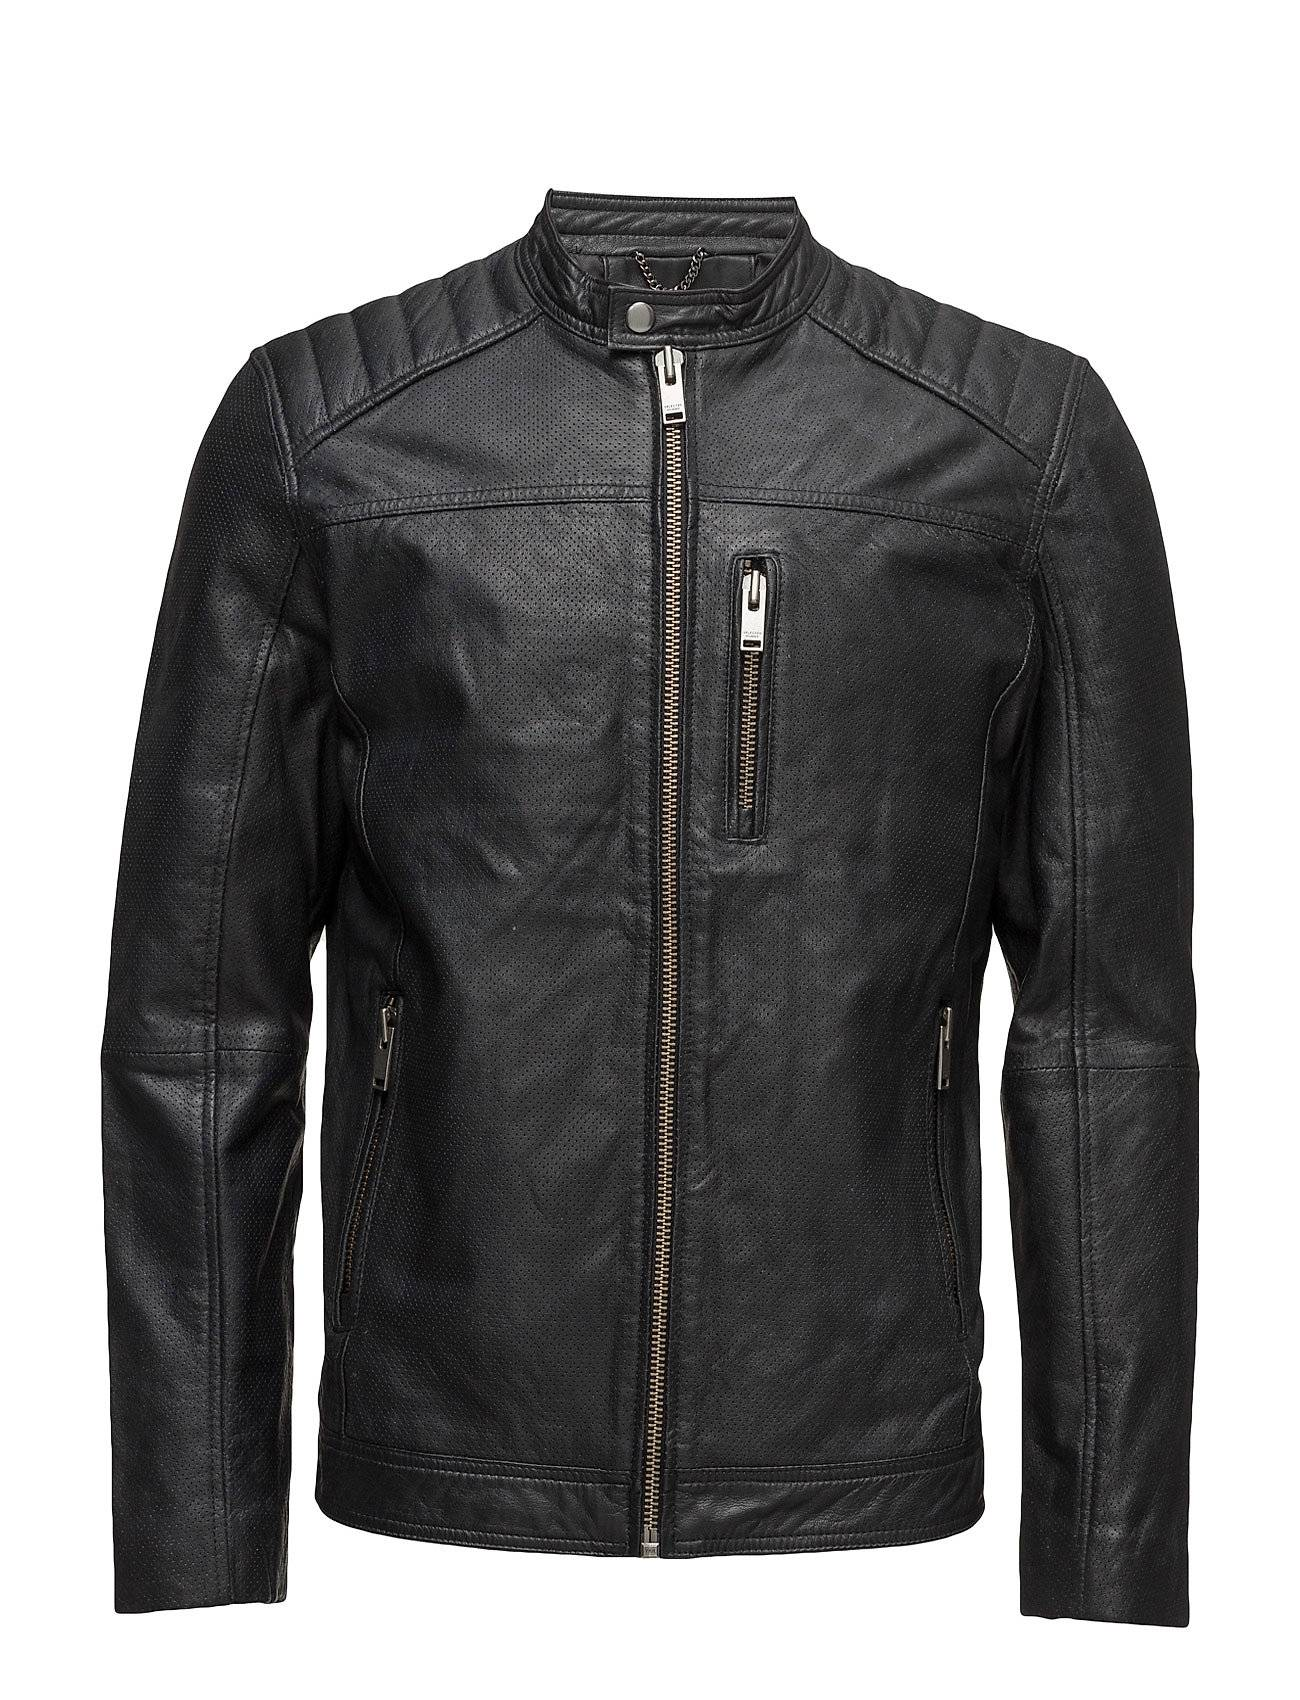 Selected Homme Shnkurt Racer Leather Jacket